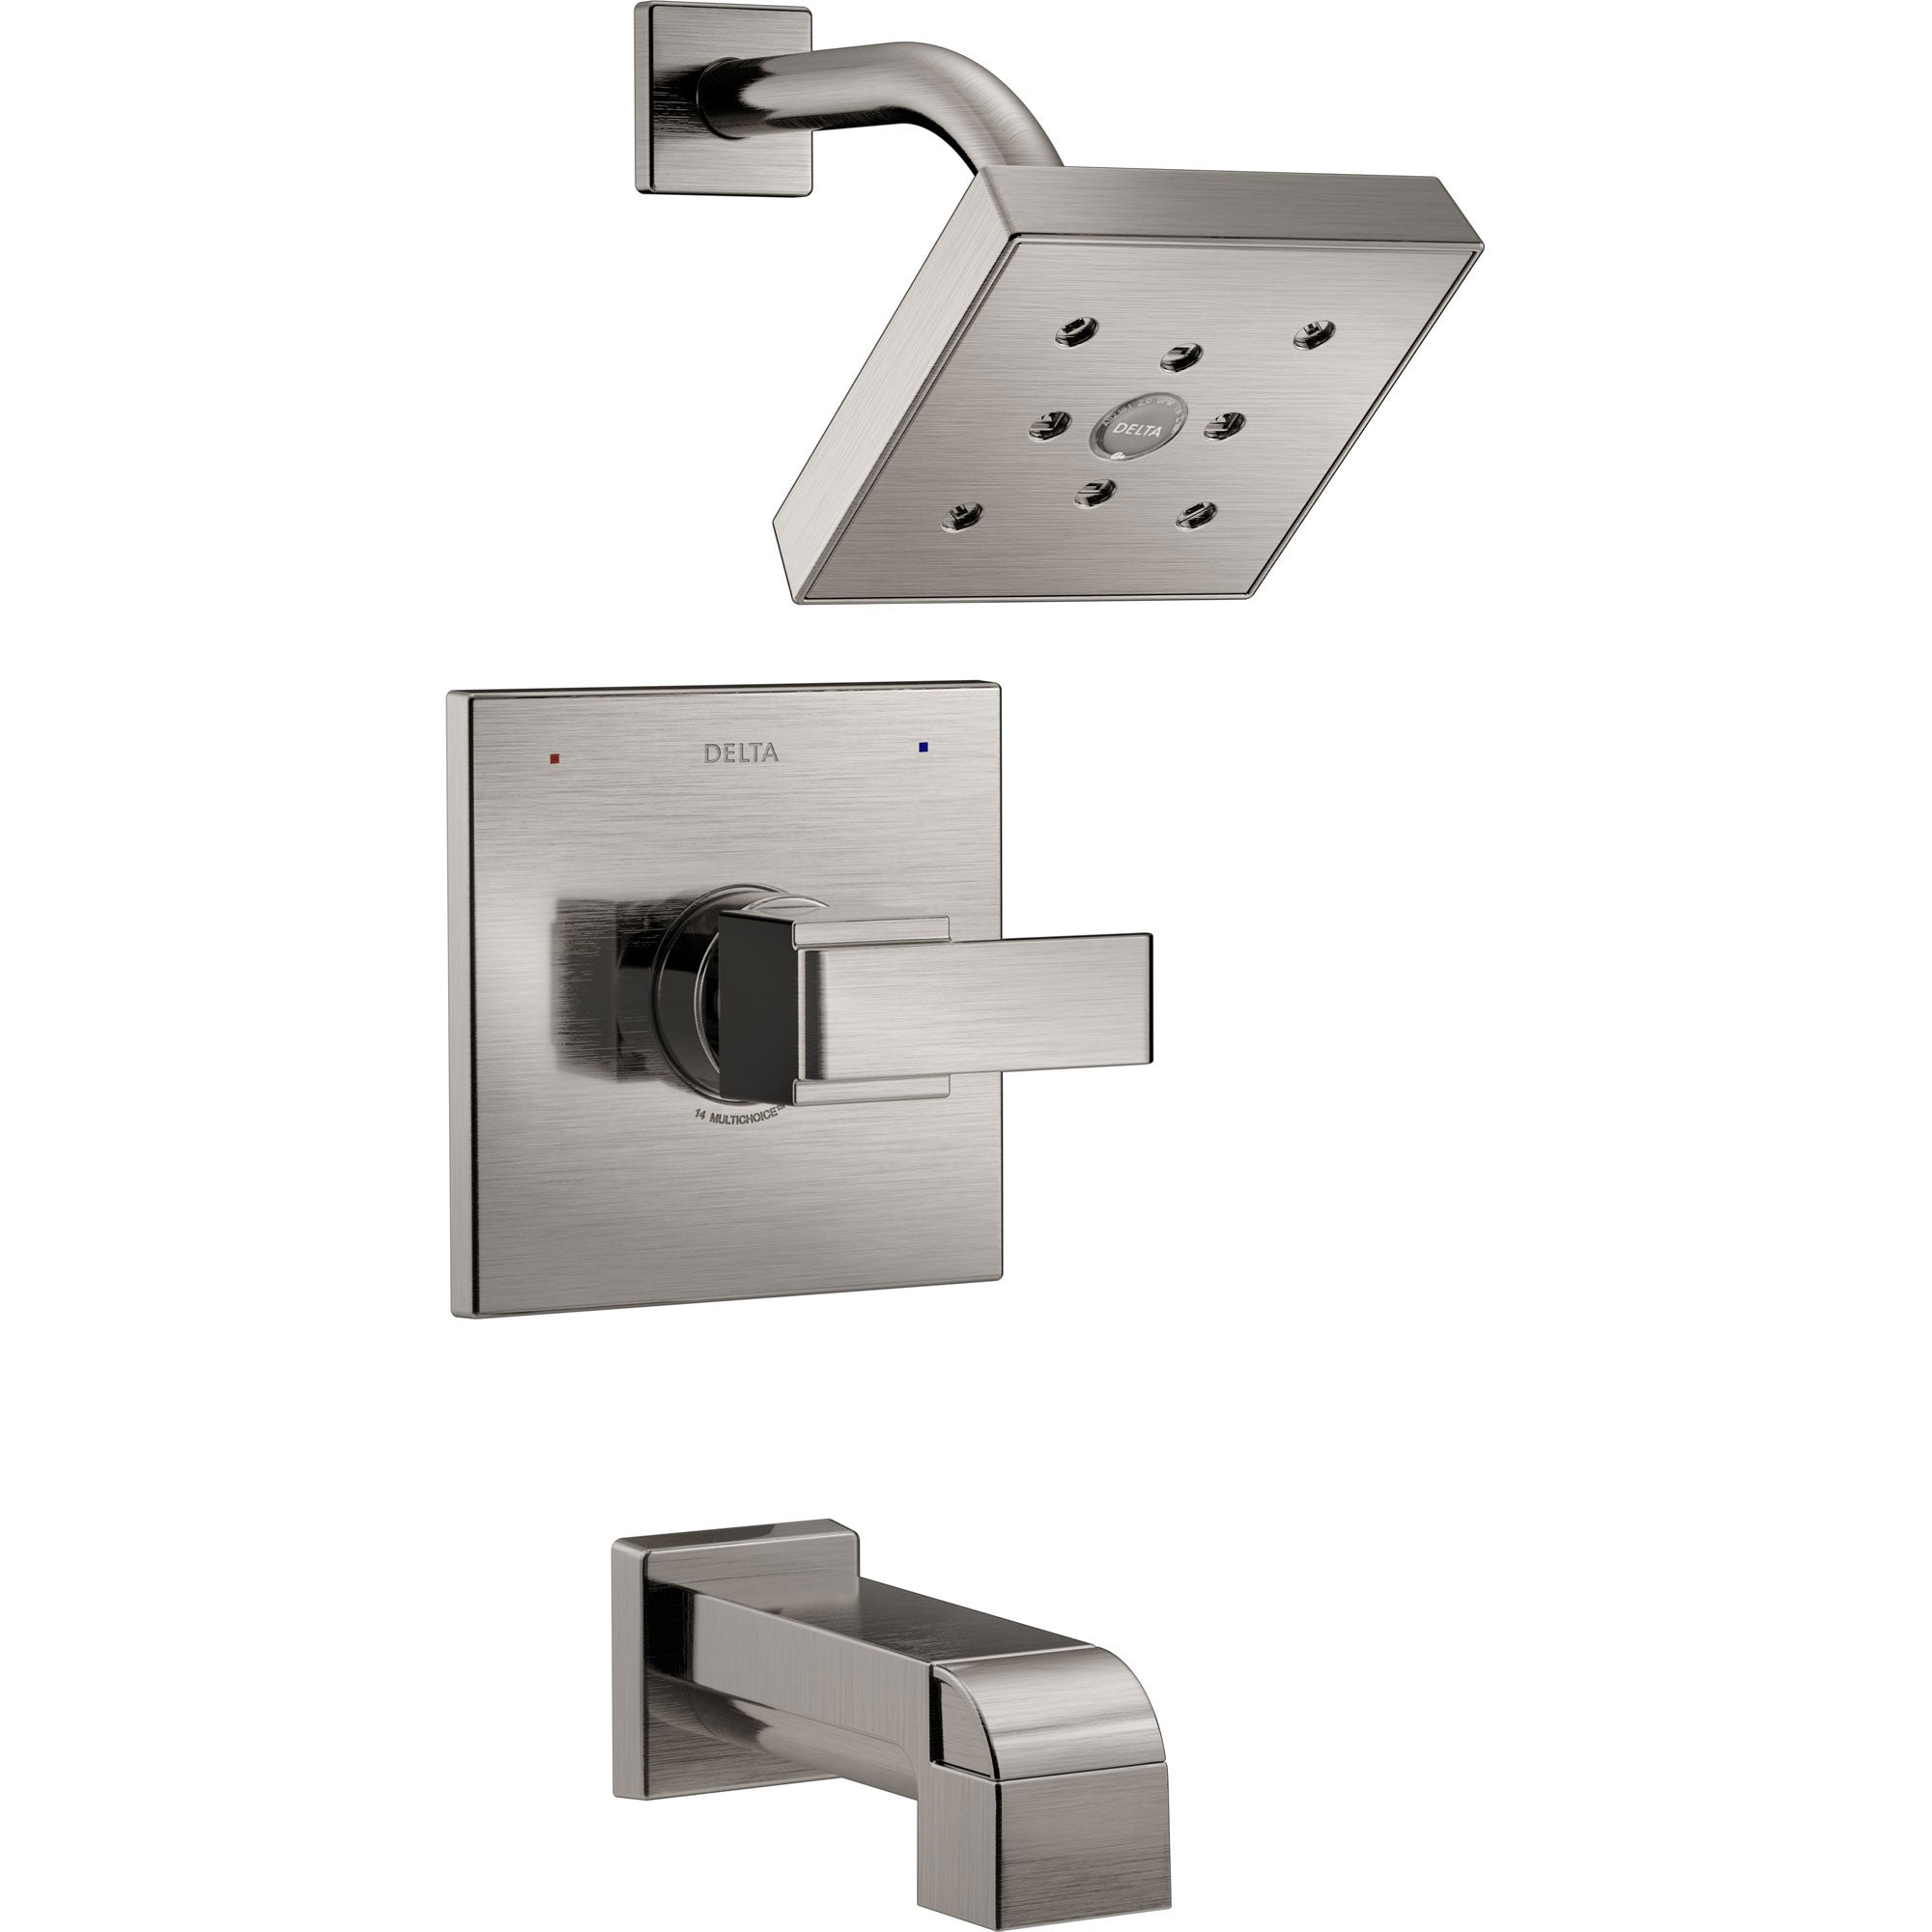 Delta Ara Modern Square Stainless Steel Finish 14 Series H2Okinetic Single Handle Tub and Shower Combination Faucet INCLUDES Rough-in Valve D1168V